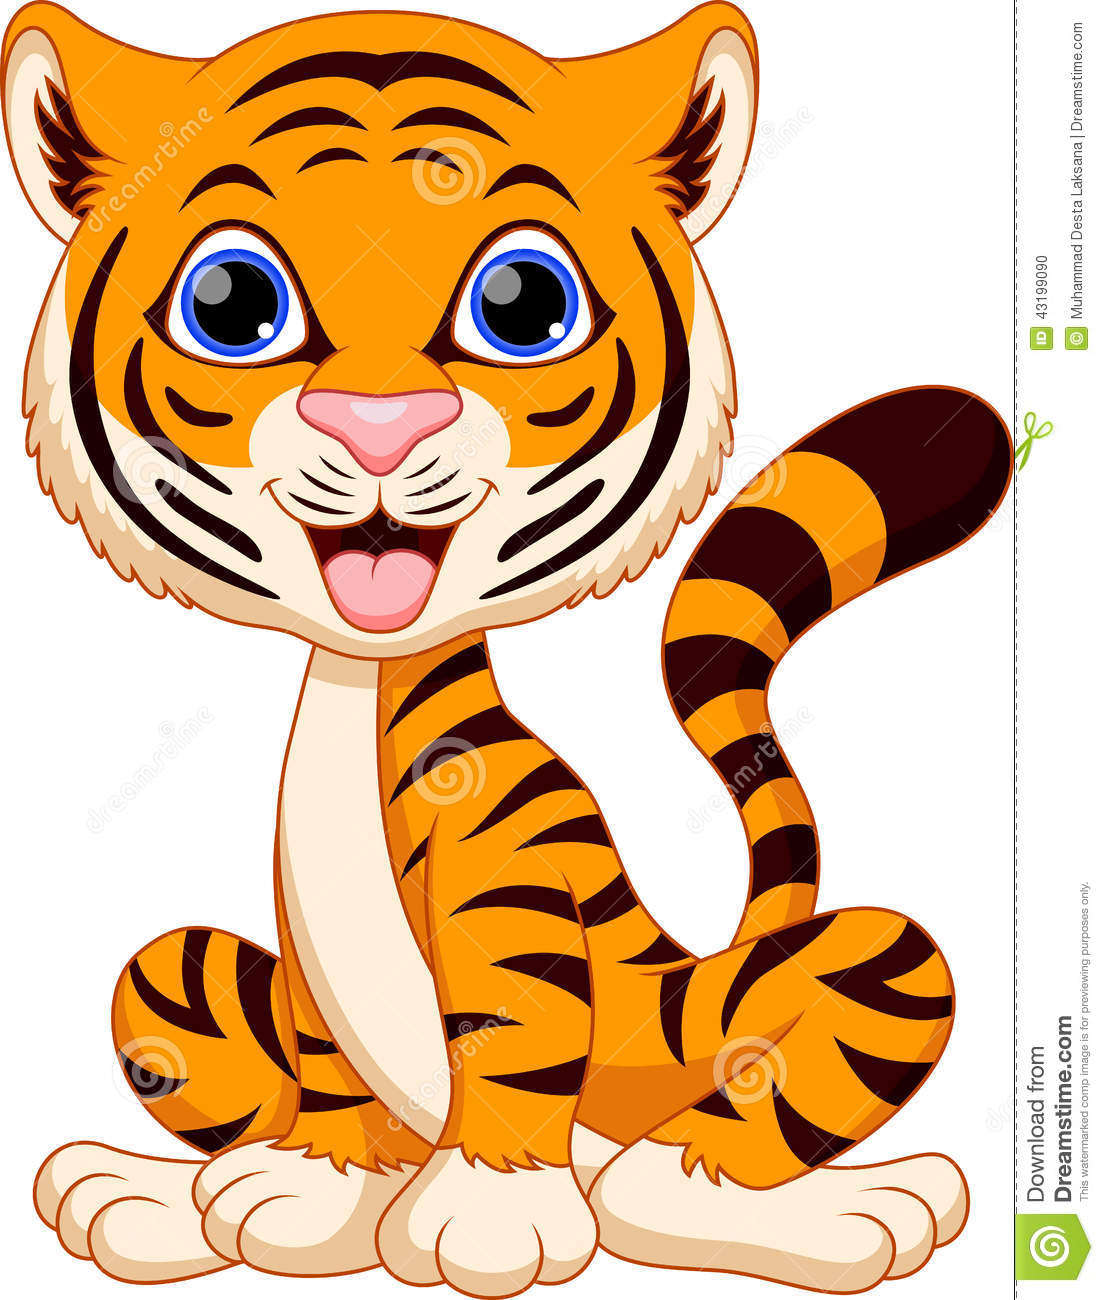 Cute Tiger Cartoon Stock Illustration - Image: 43199090